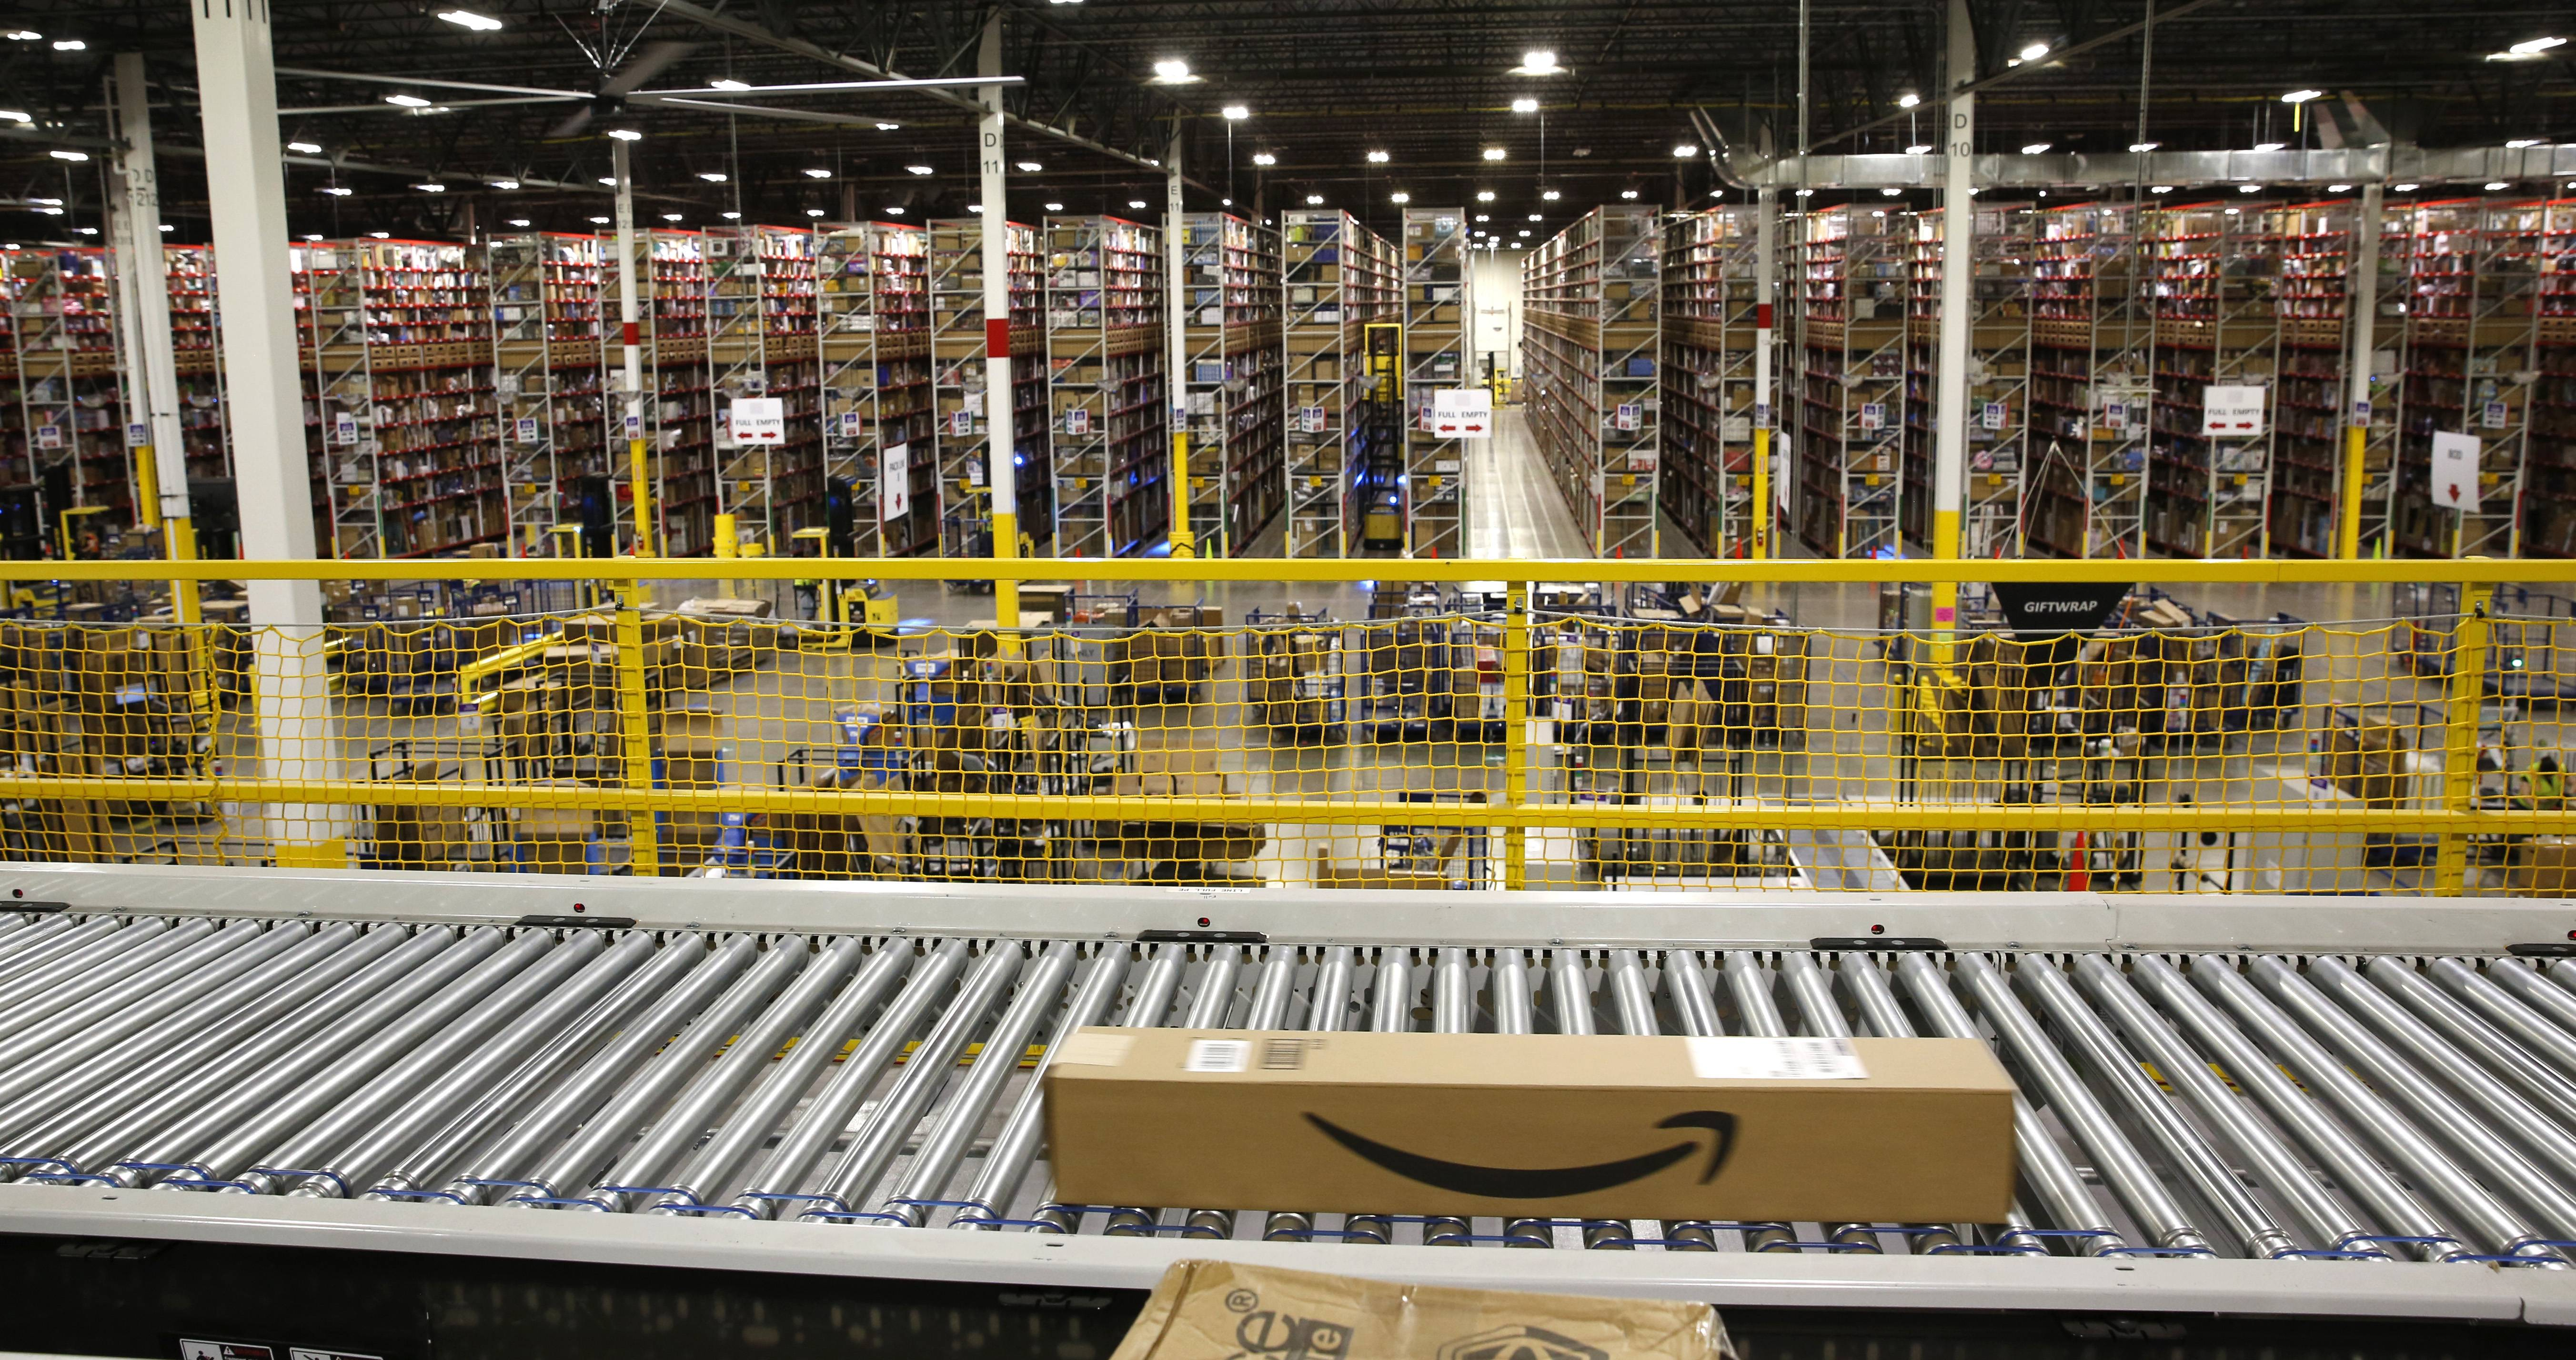 Crest Hill sees new Amazon facility as an economic driver